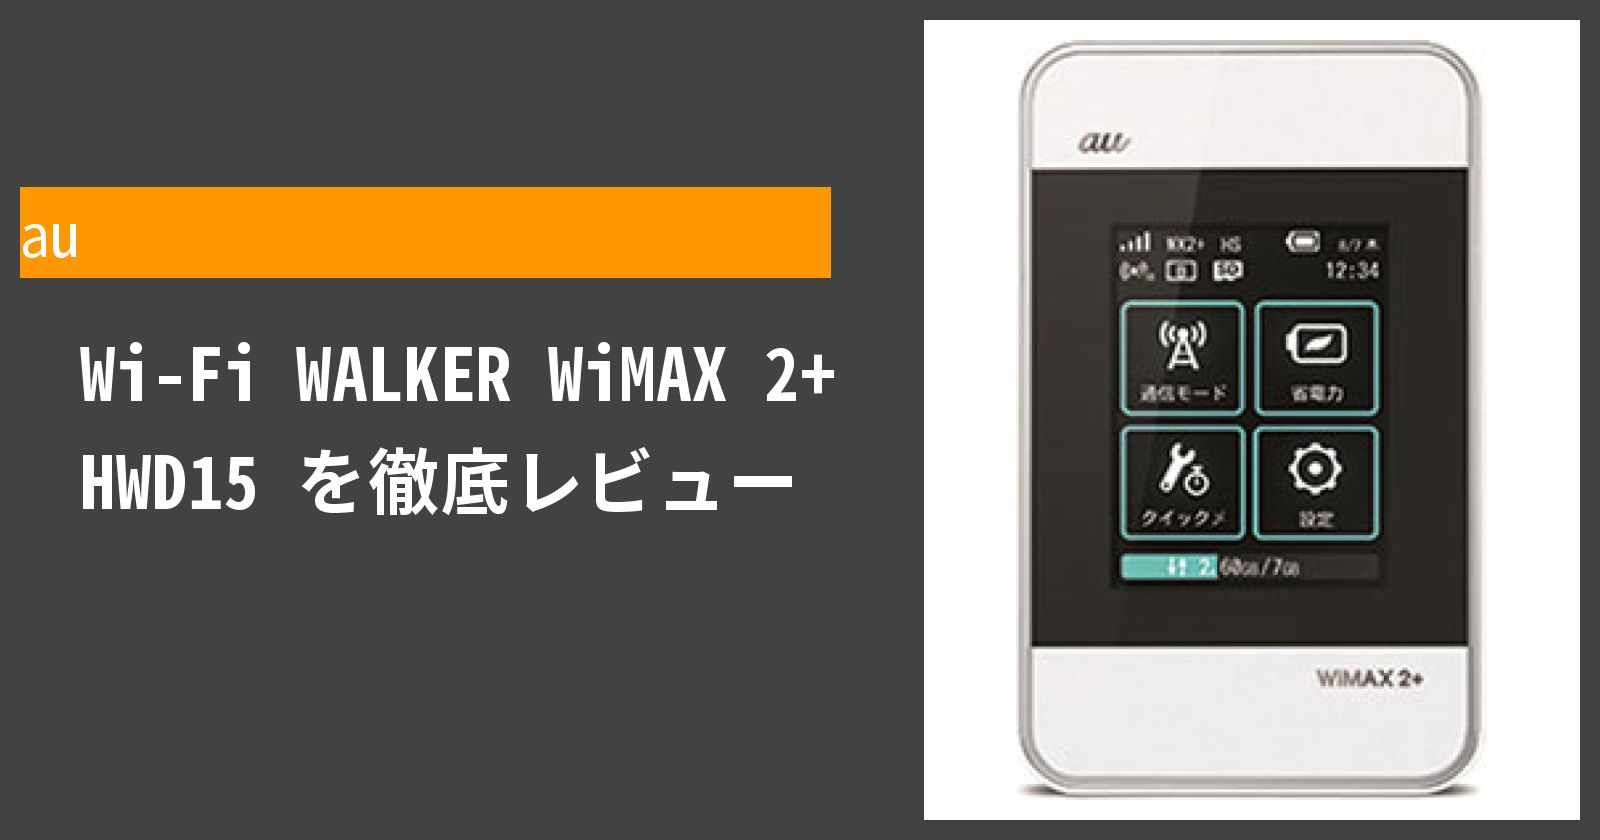 Wi-Fi WALKER WiMAX 2+ HWD15を徹底評価